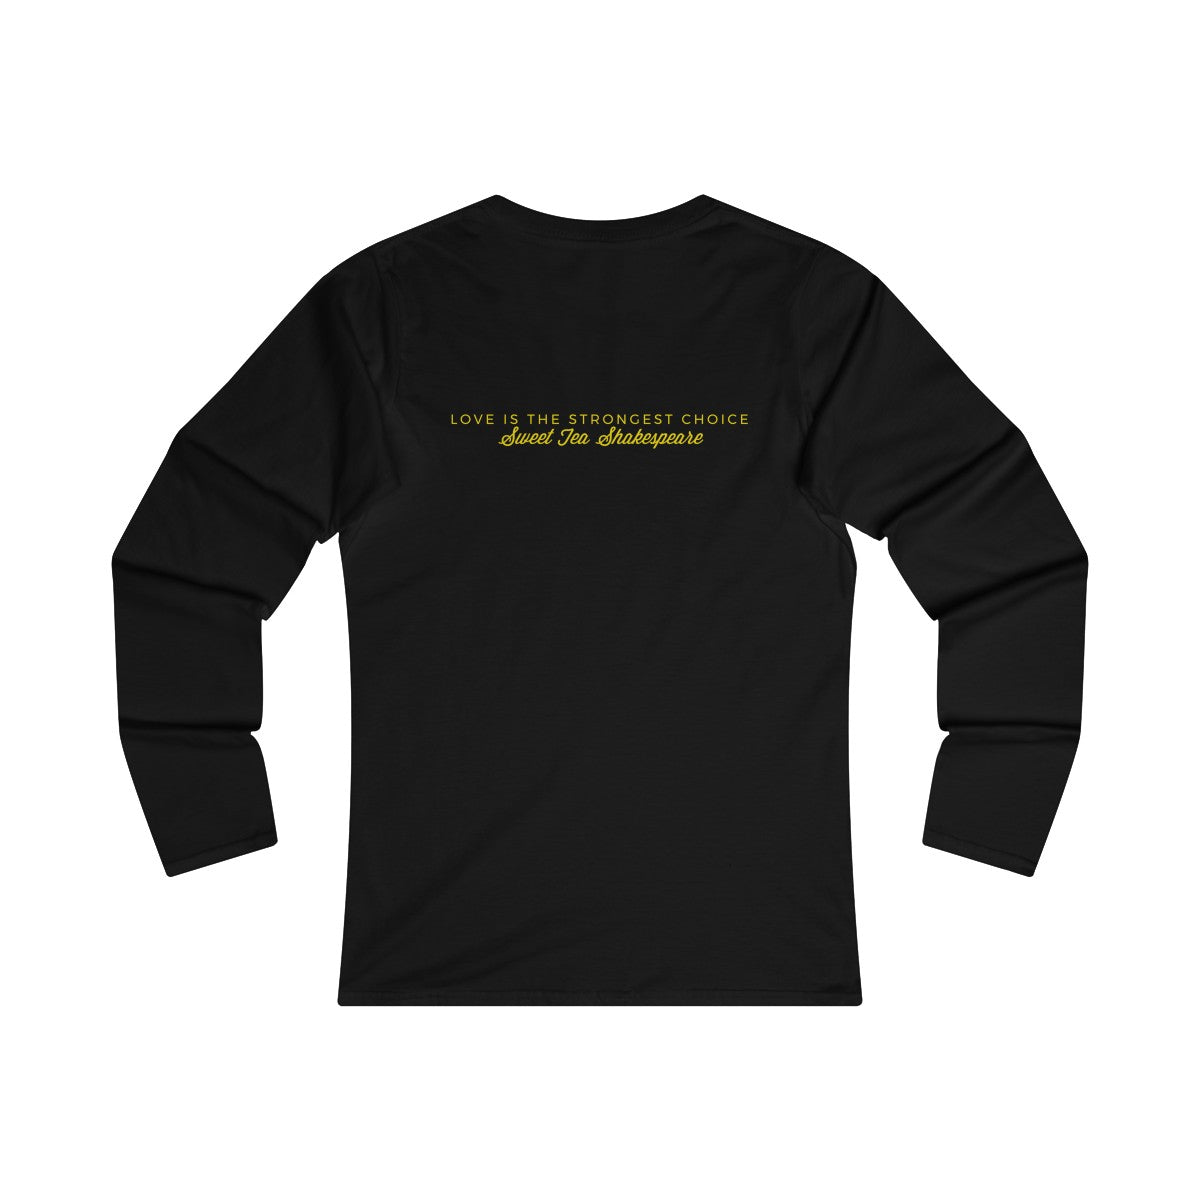 We're Not Math Majors Women's Fitted Long Sleeve Tee